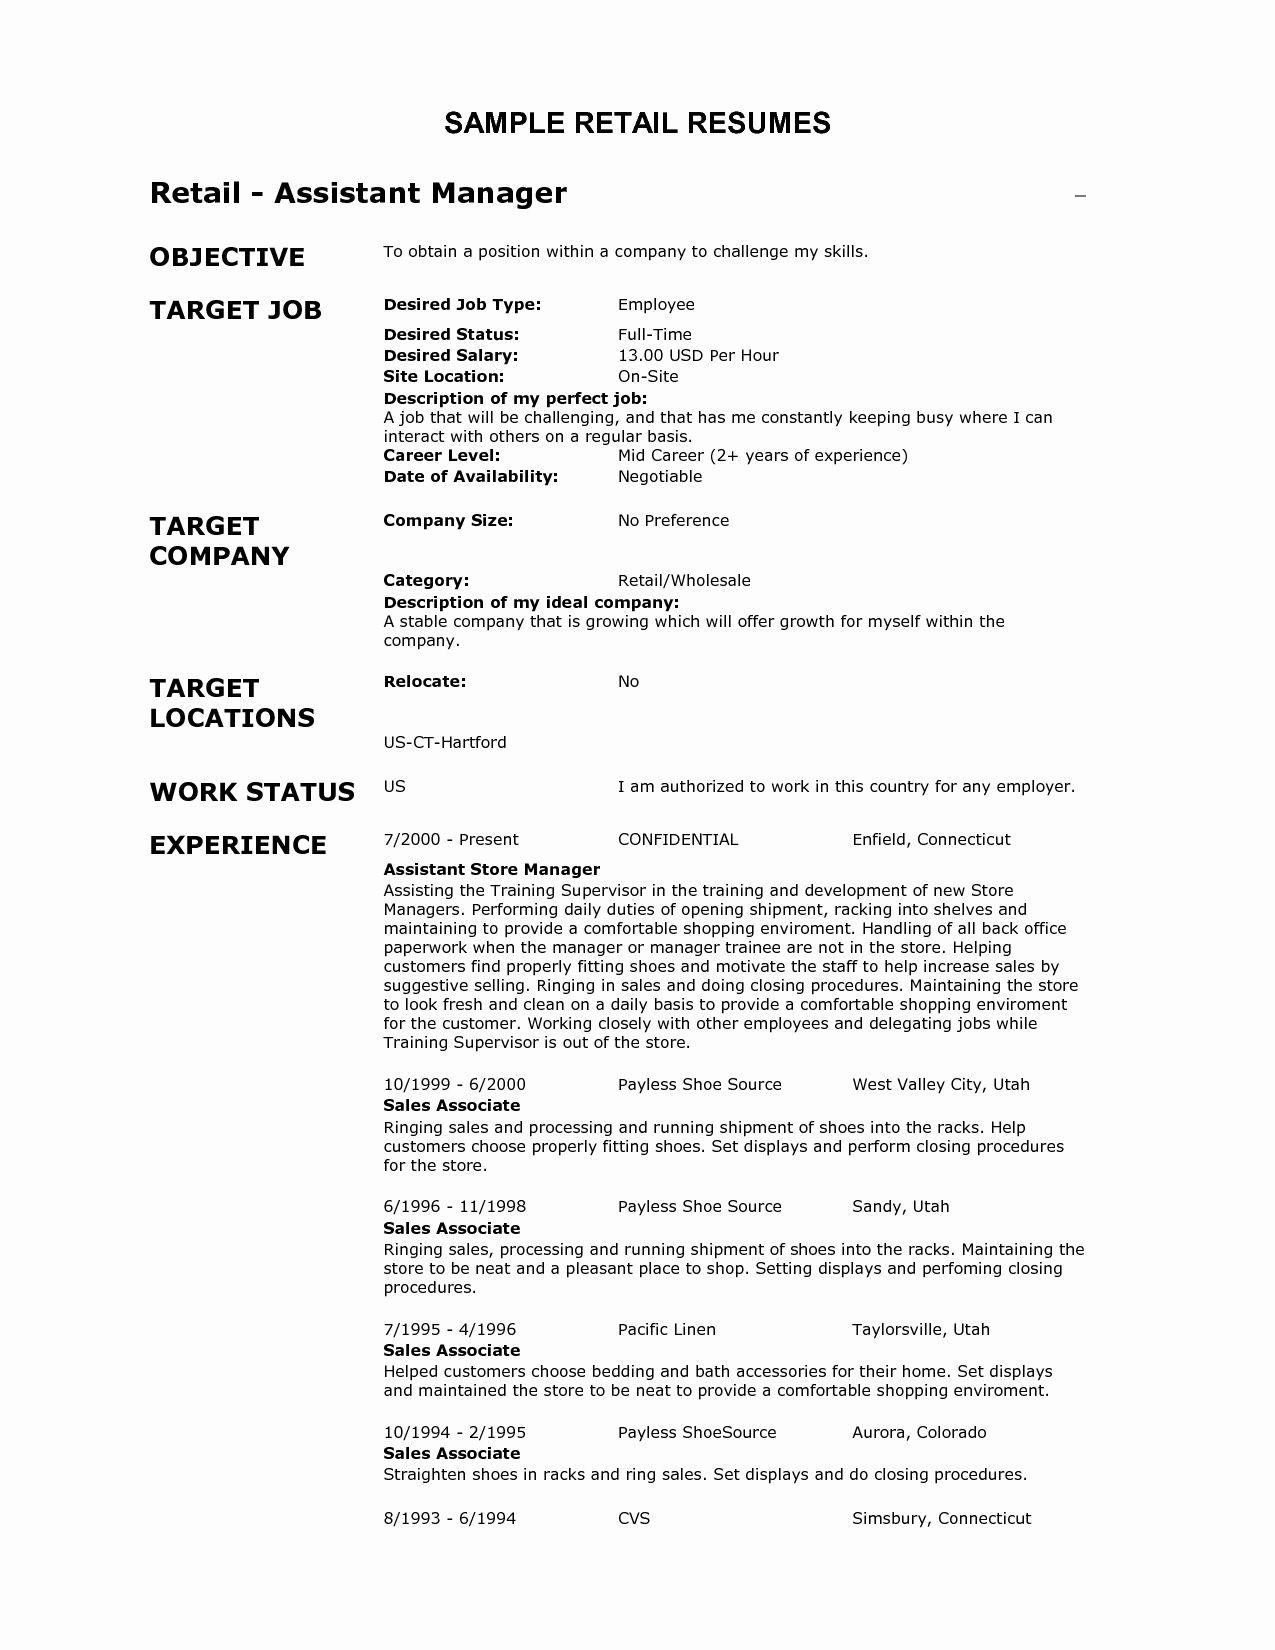 Availability Date In Resume   Performance Professional  Mid Career Resume